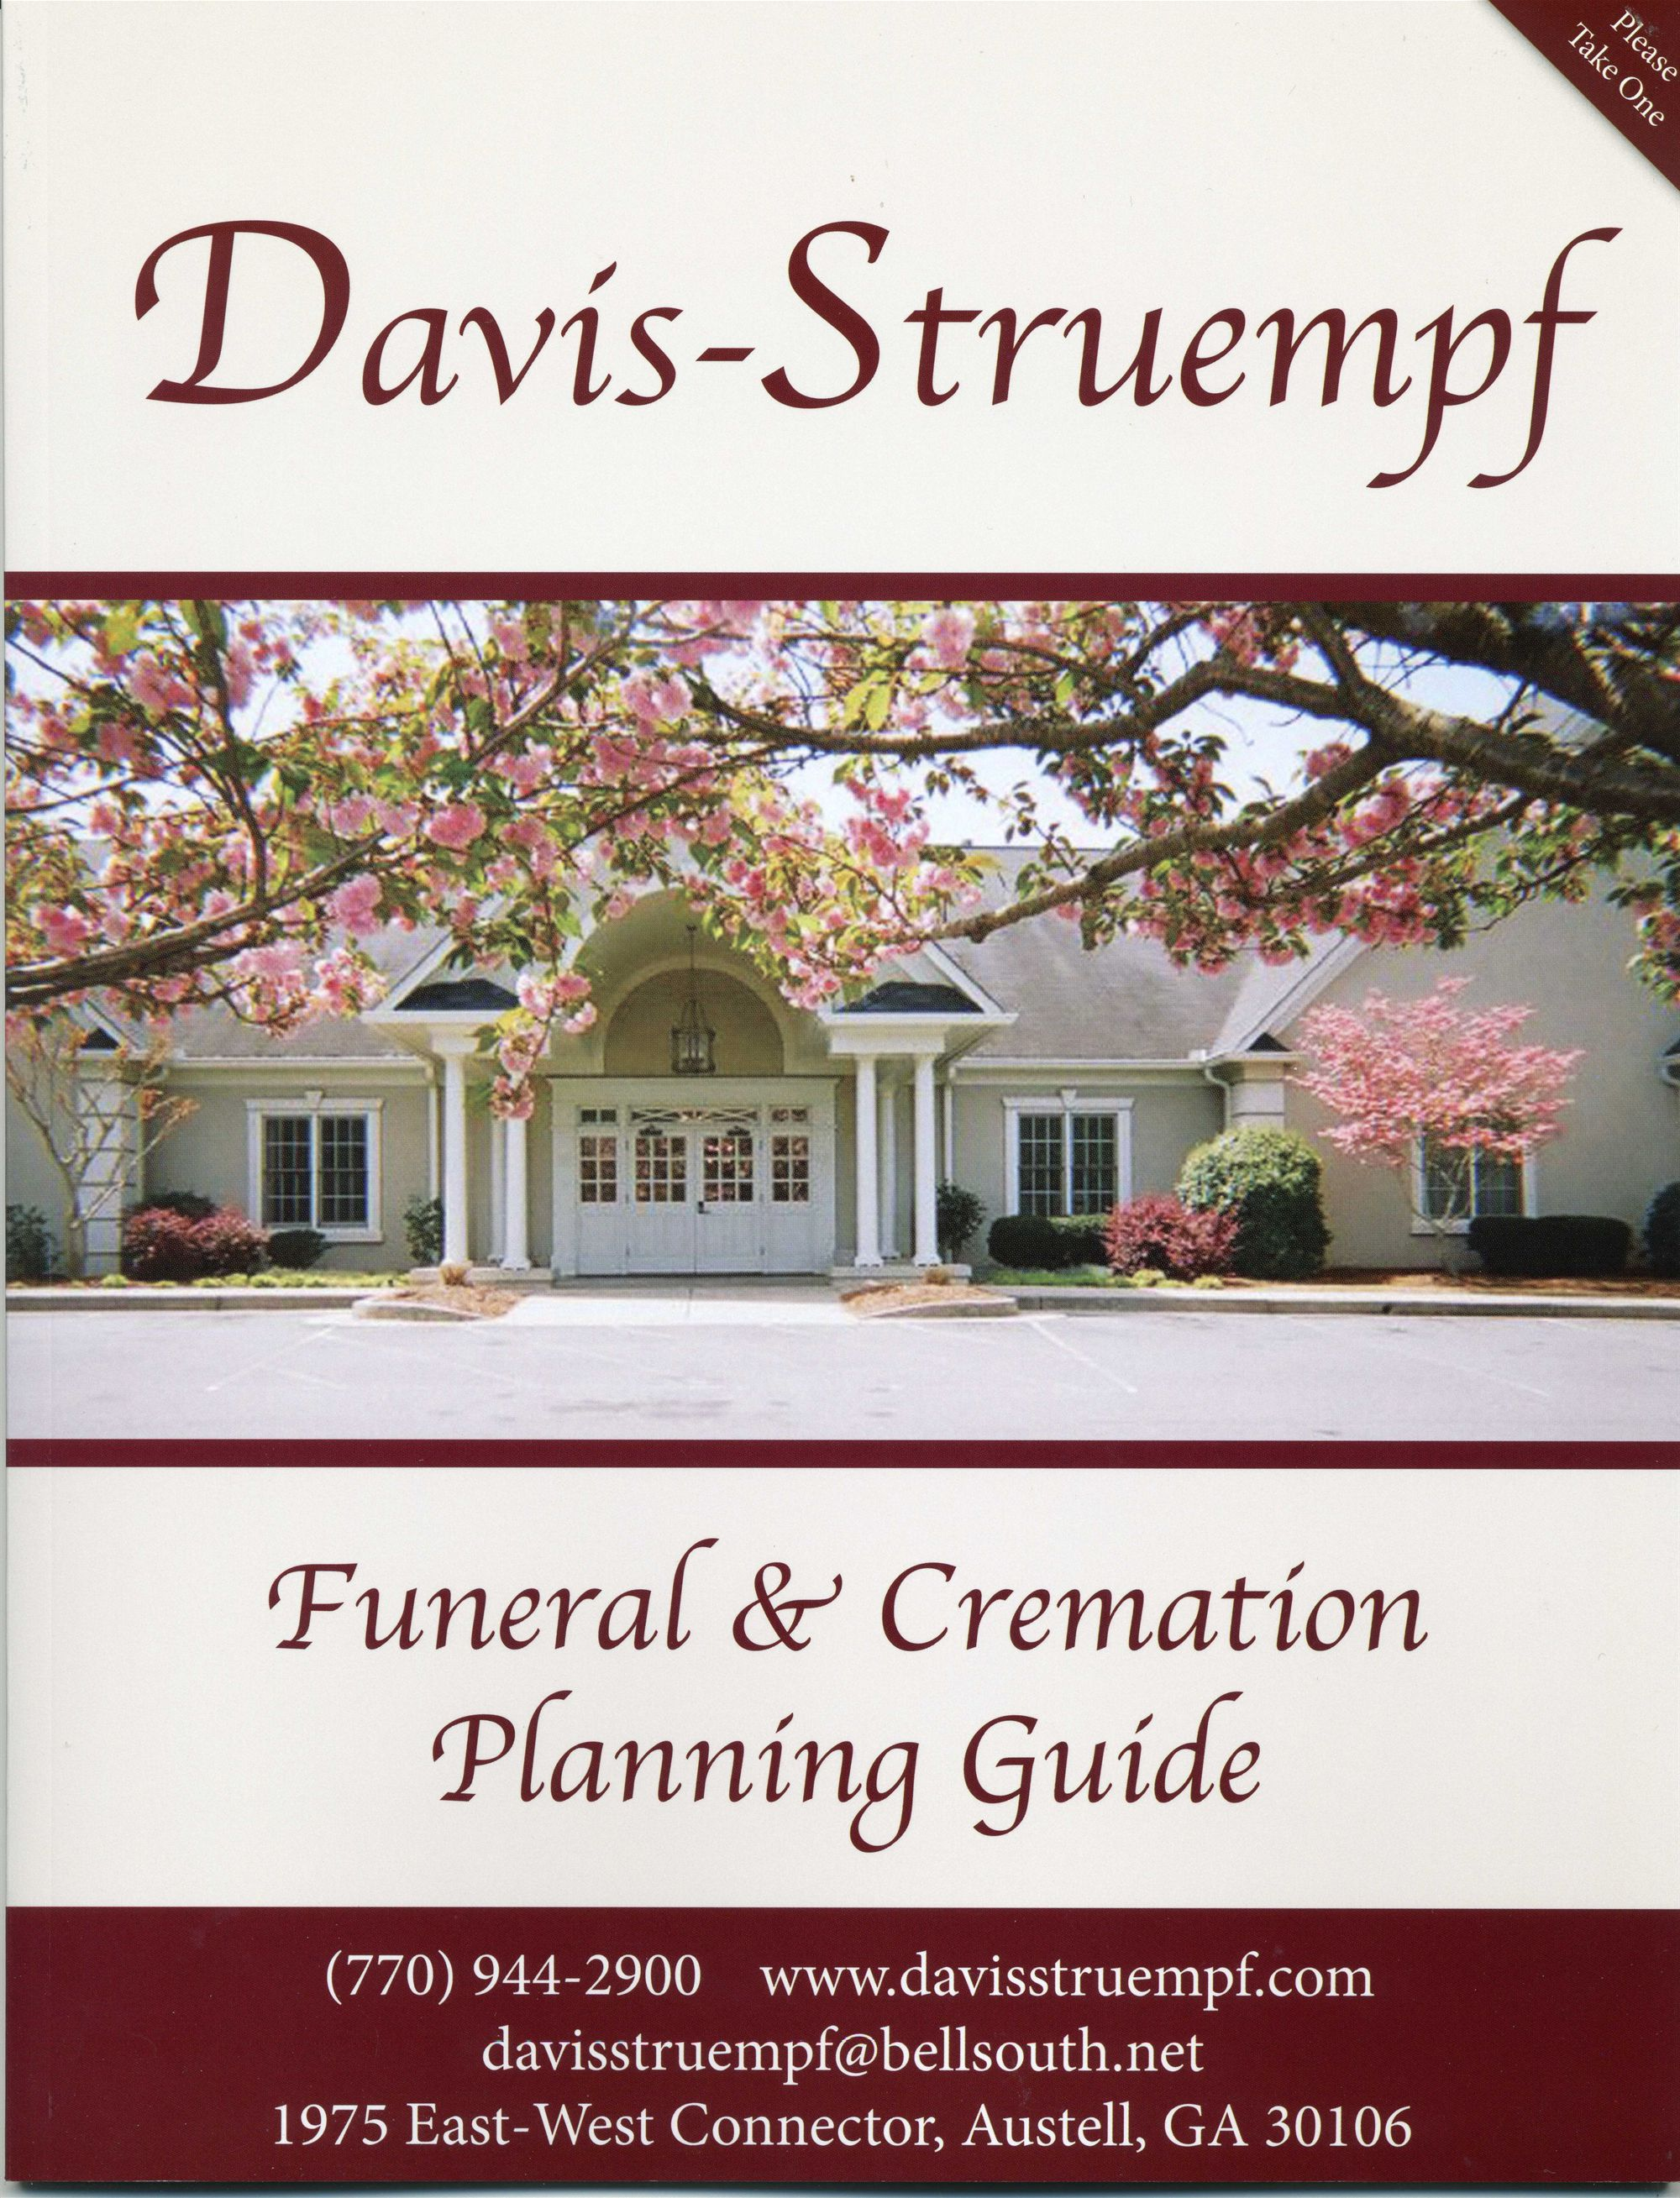 Funeral and Cremation pre-planning checklist